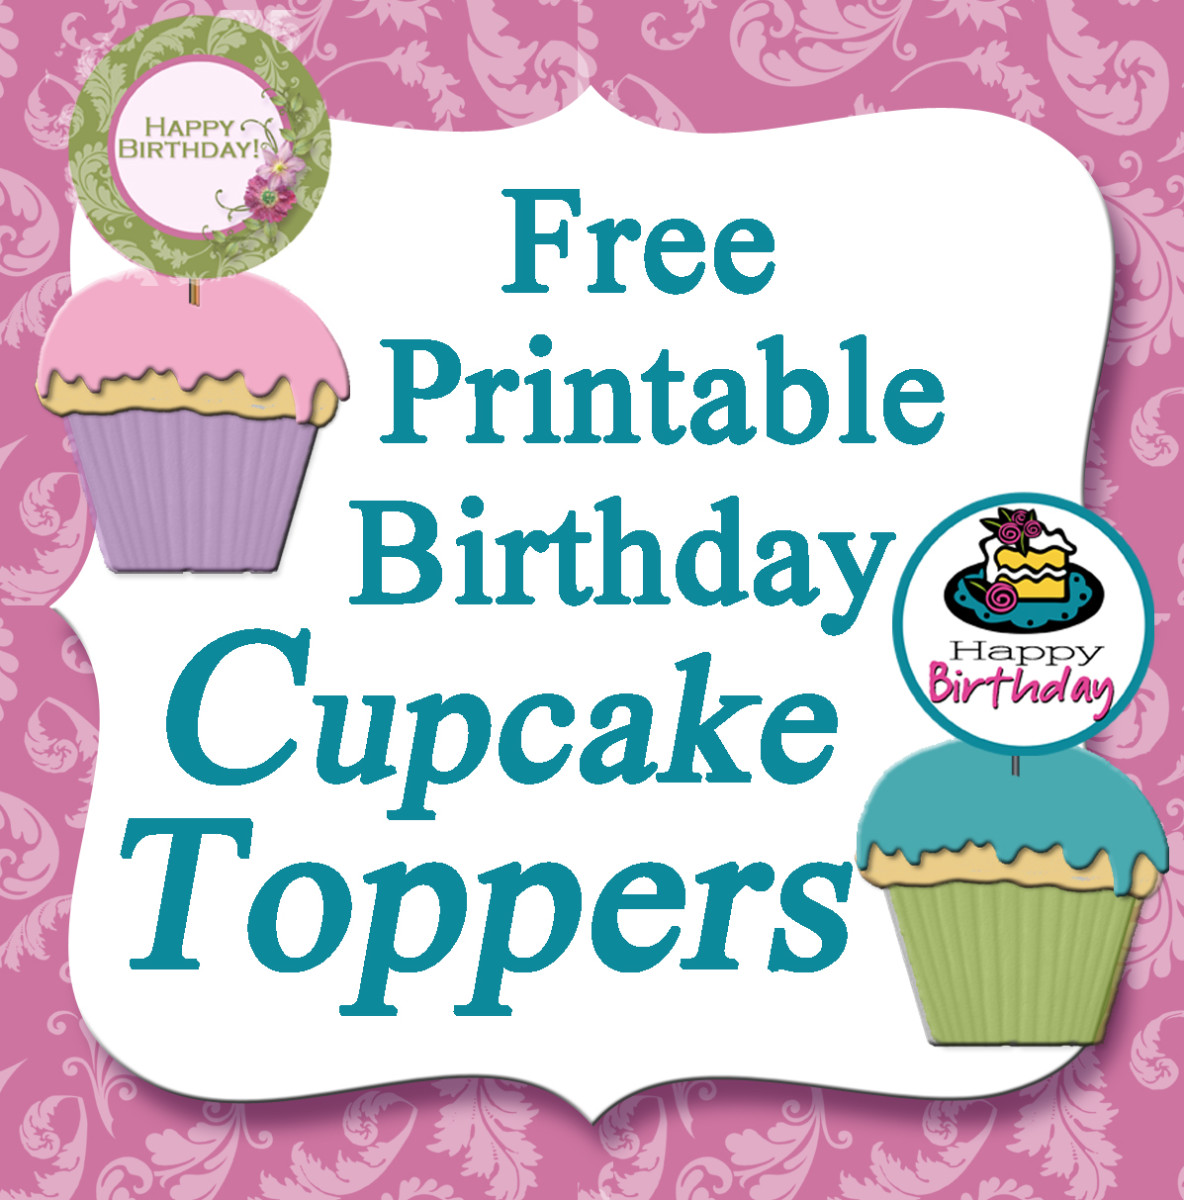 Birthday Cake Pictures Free Printable : Free Printable Birthday Cupcake Toppers hubpages